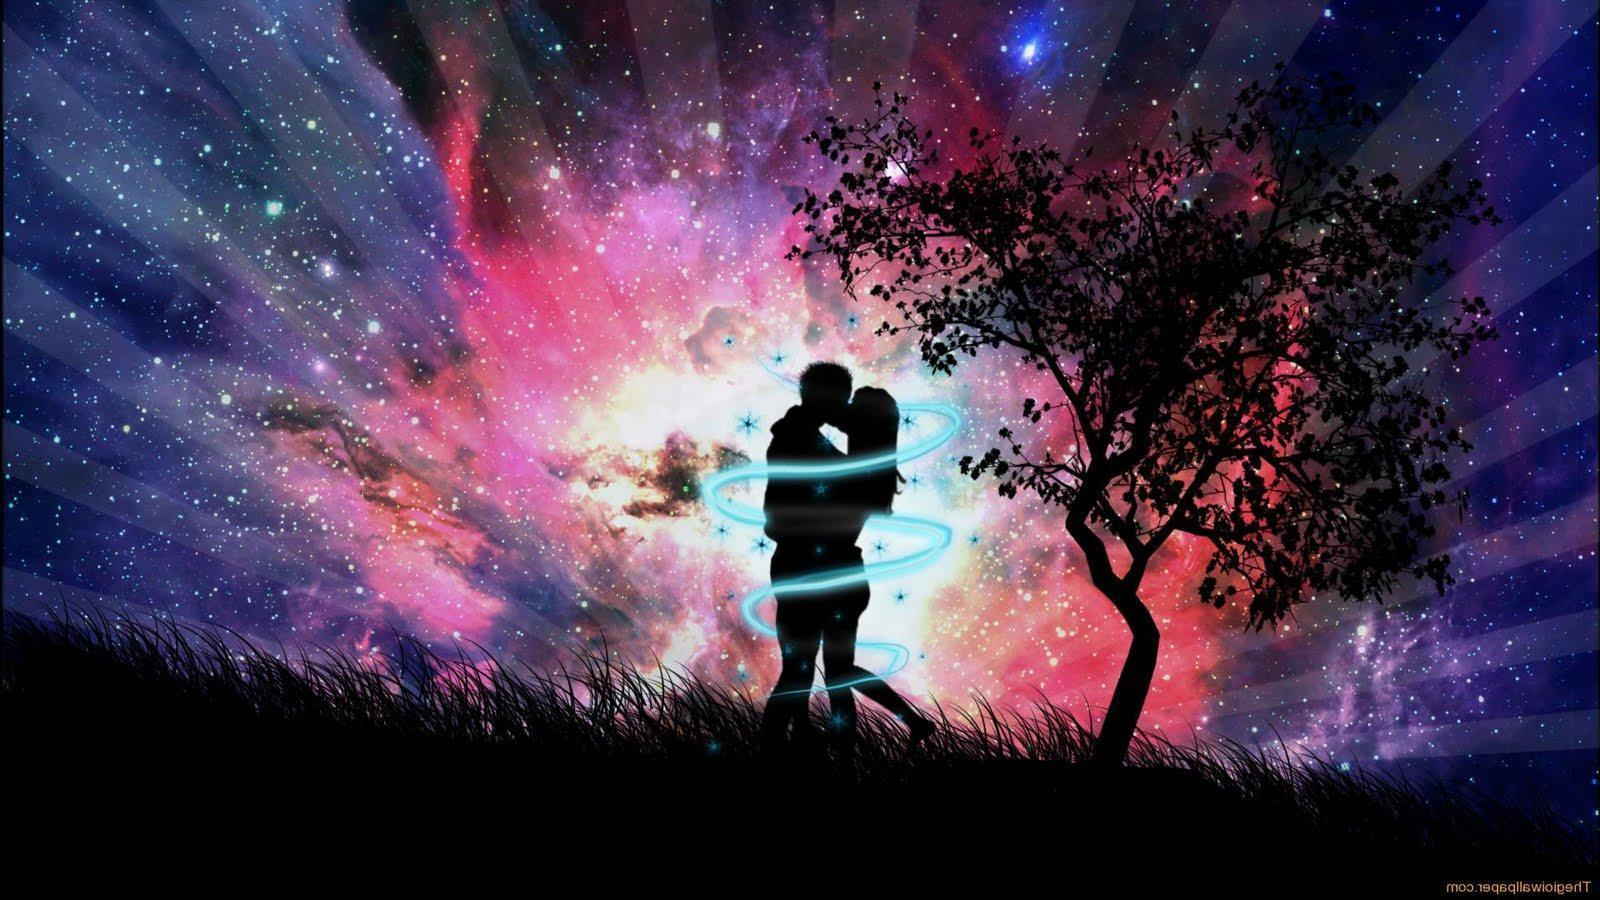 Wallpaper Love Kiss Hot : Kiss Love Wallpapers - Wallpaper cave